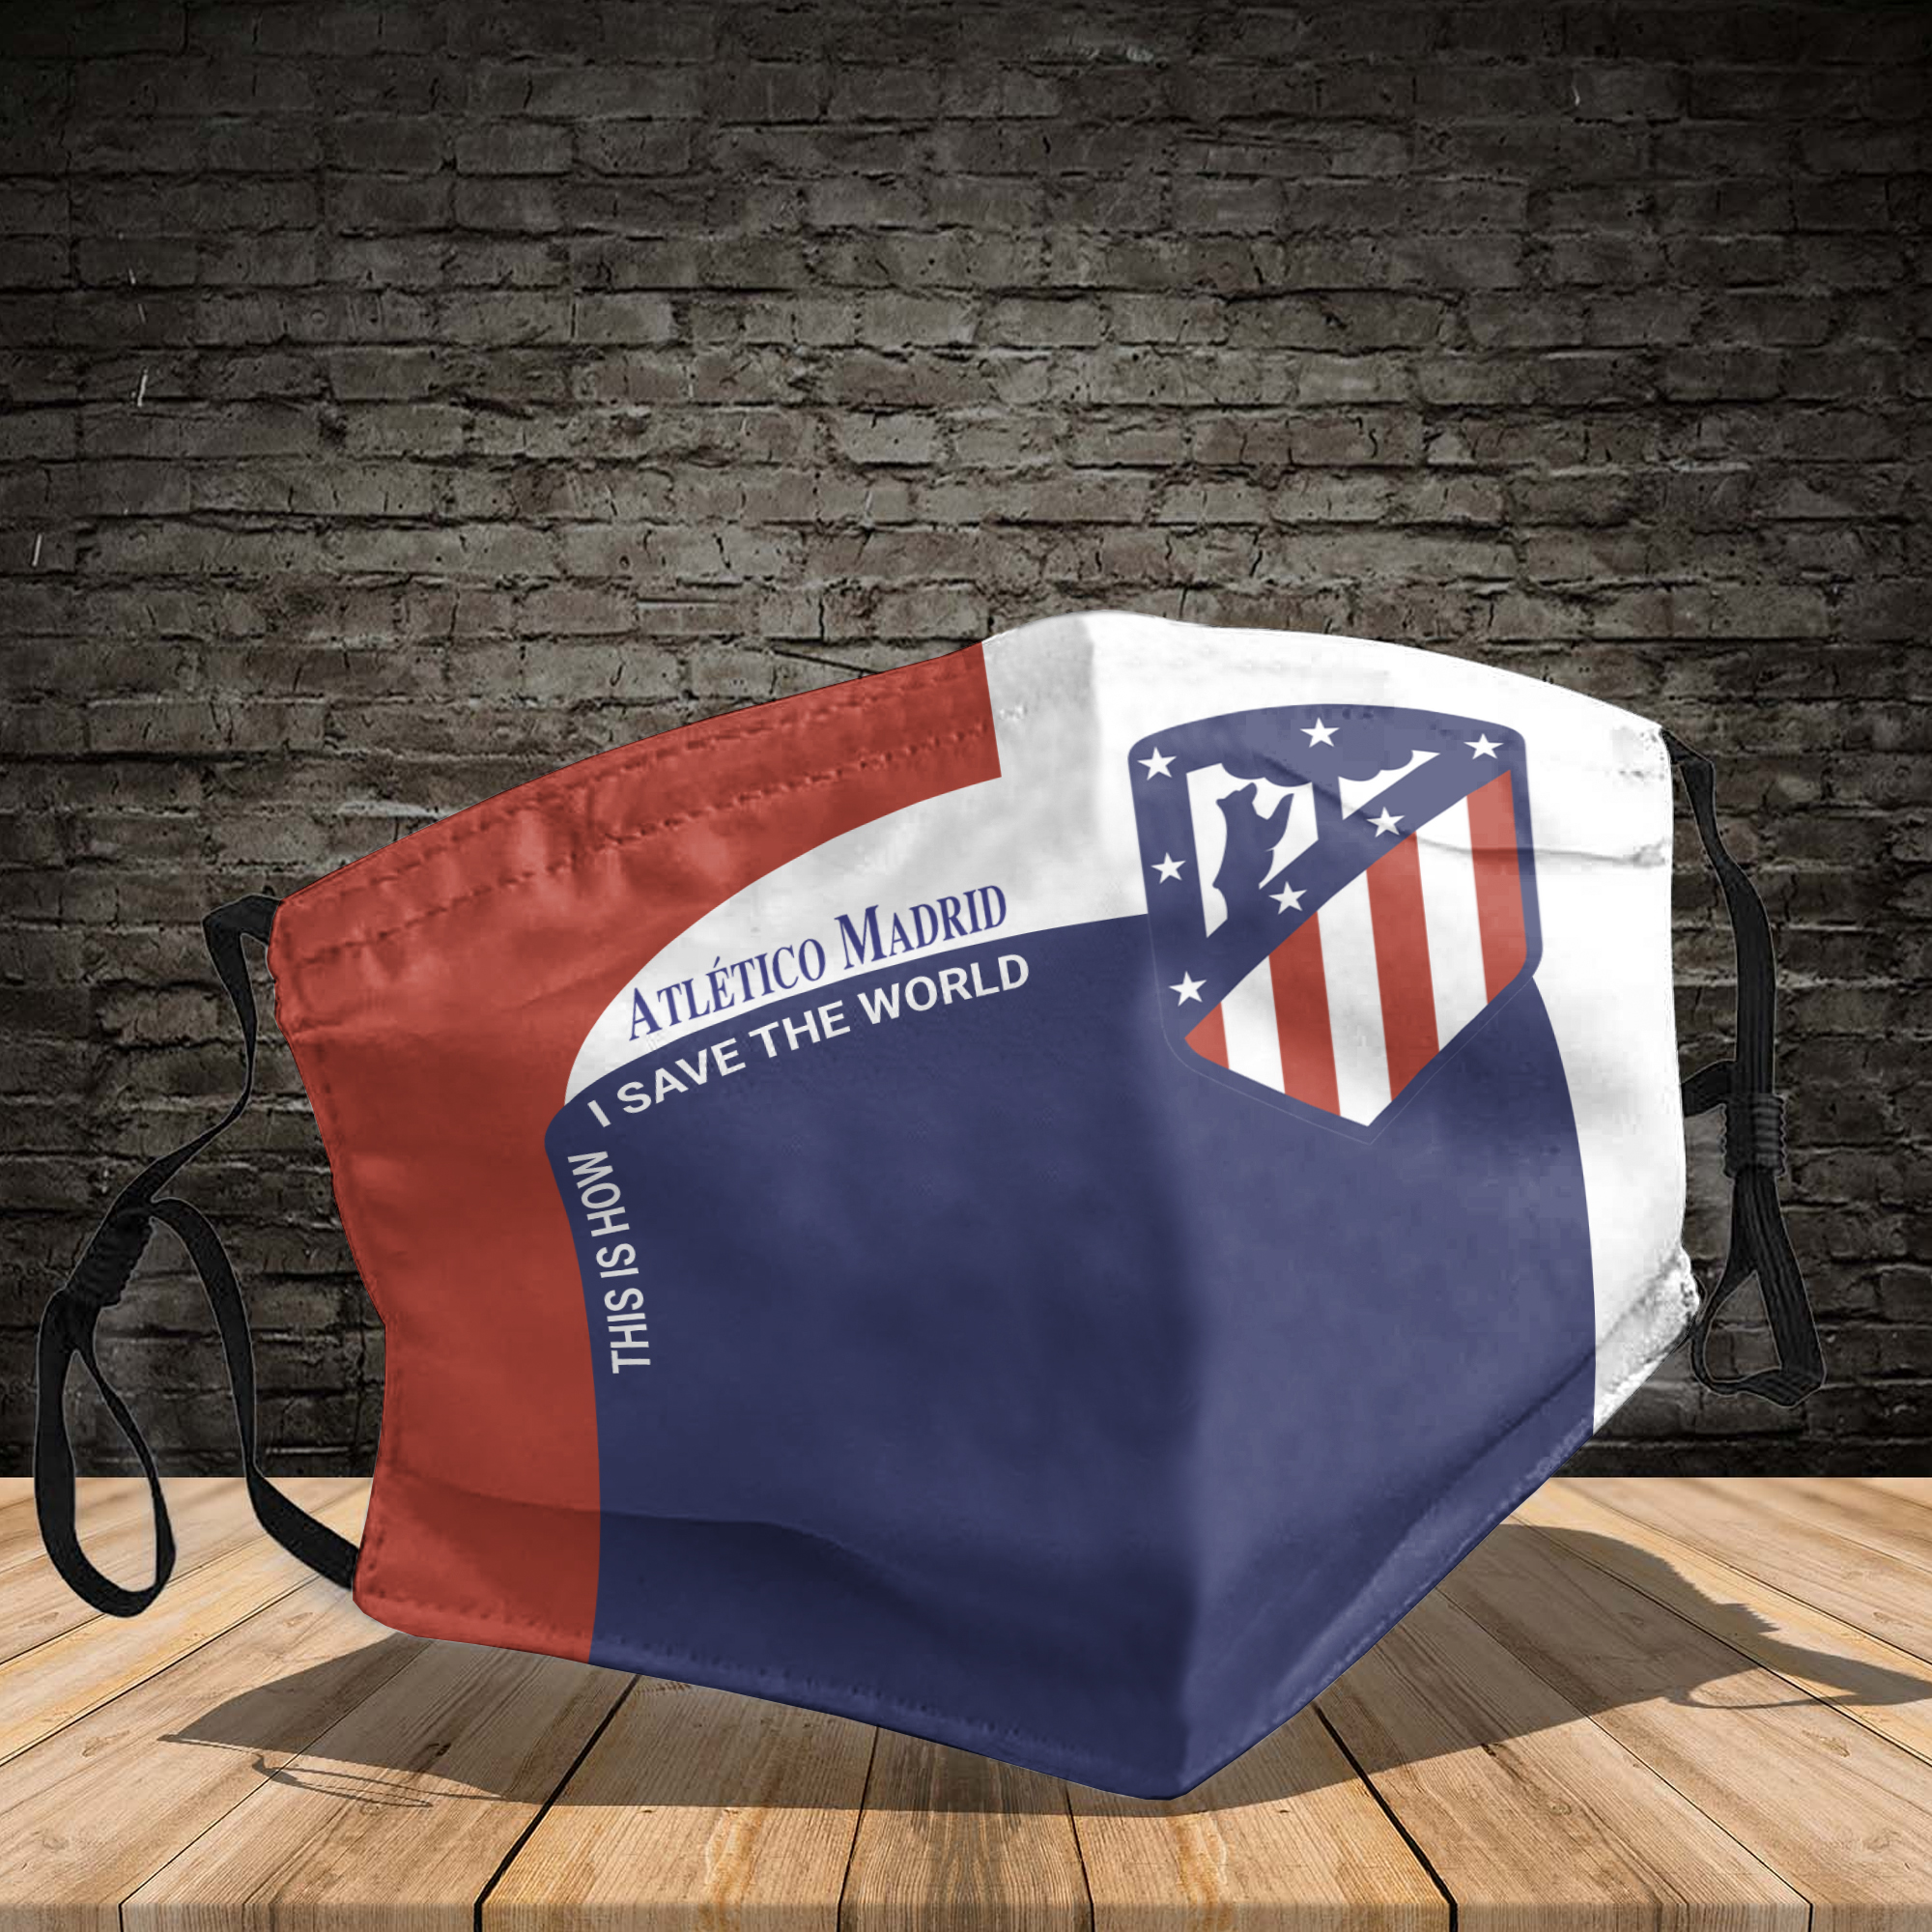 Atletico madrid this is how I save the world face mask